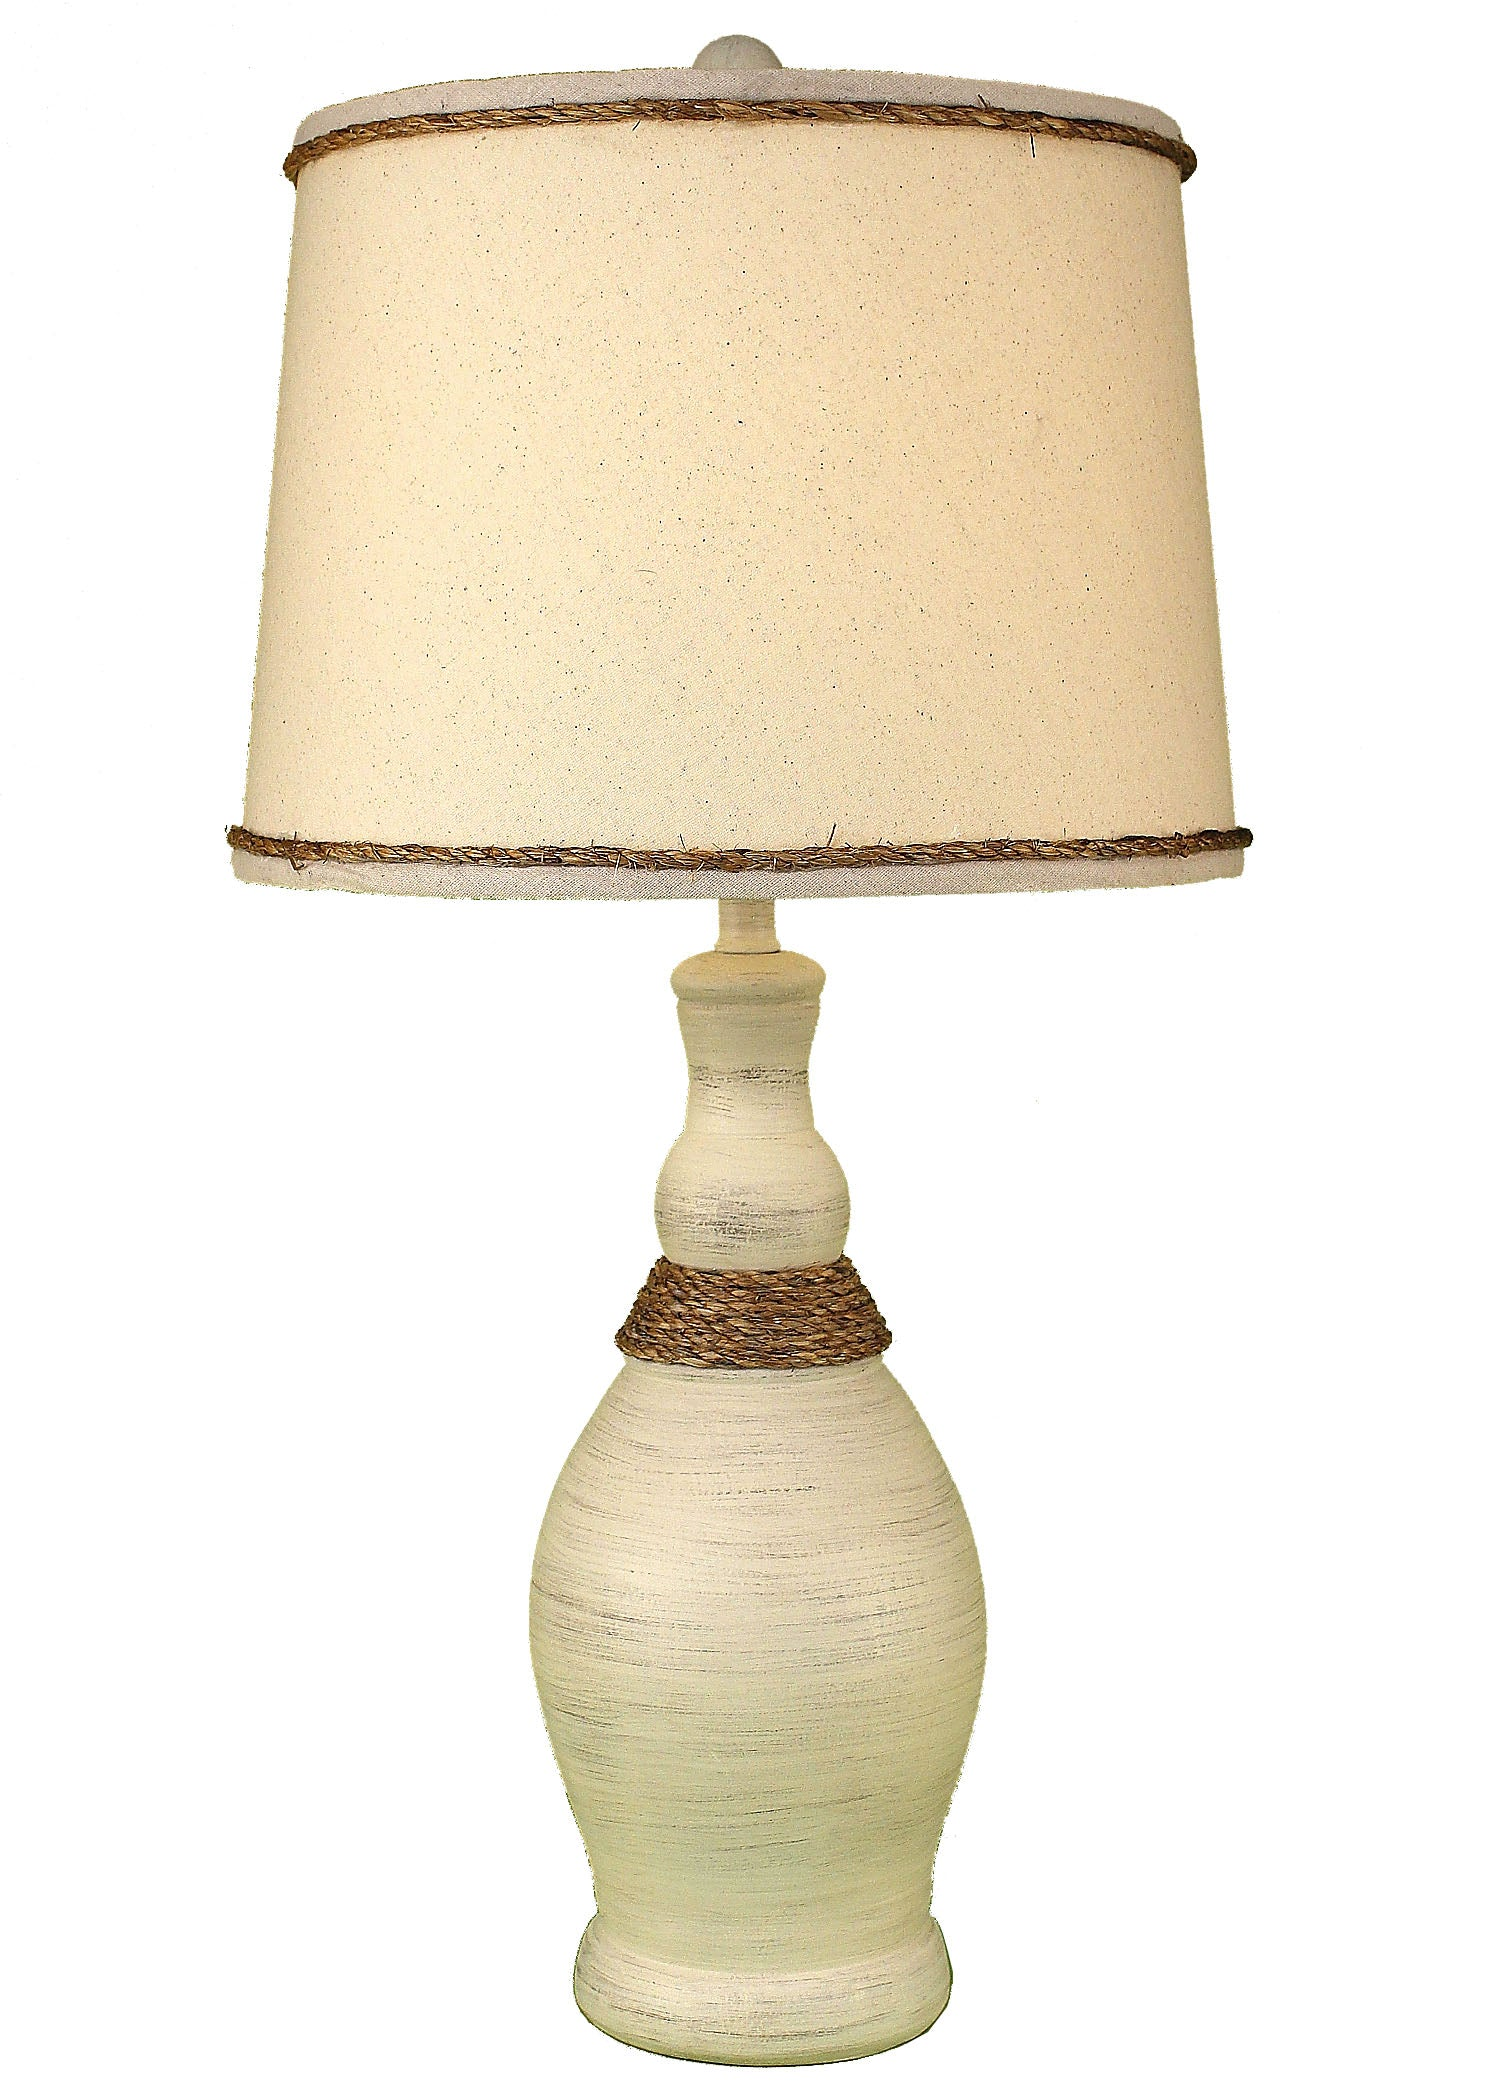 Cottage Slender Neck Table Lamp w/ Weathered Rope Accent Lamp - Coast Lamp Shop